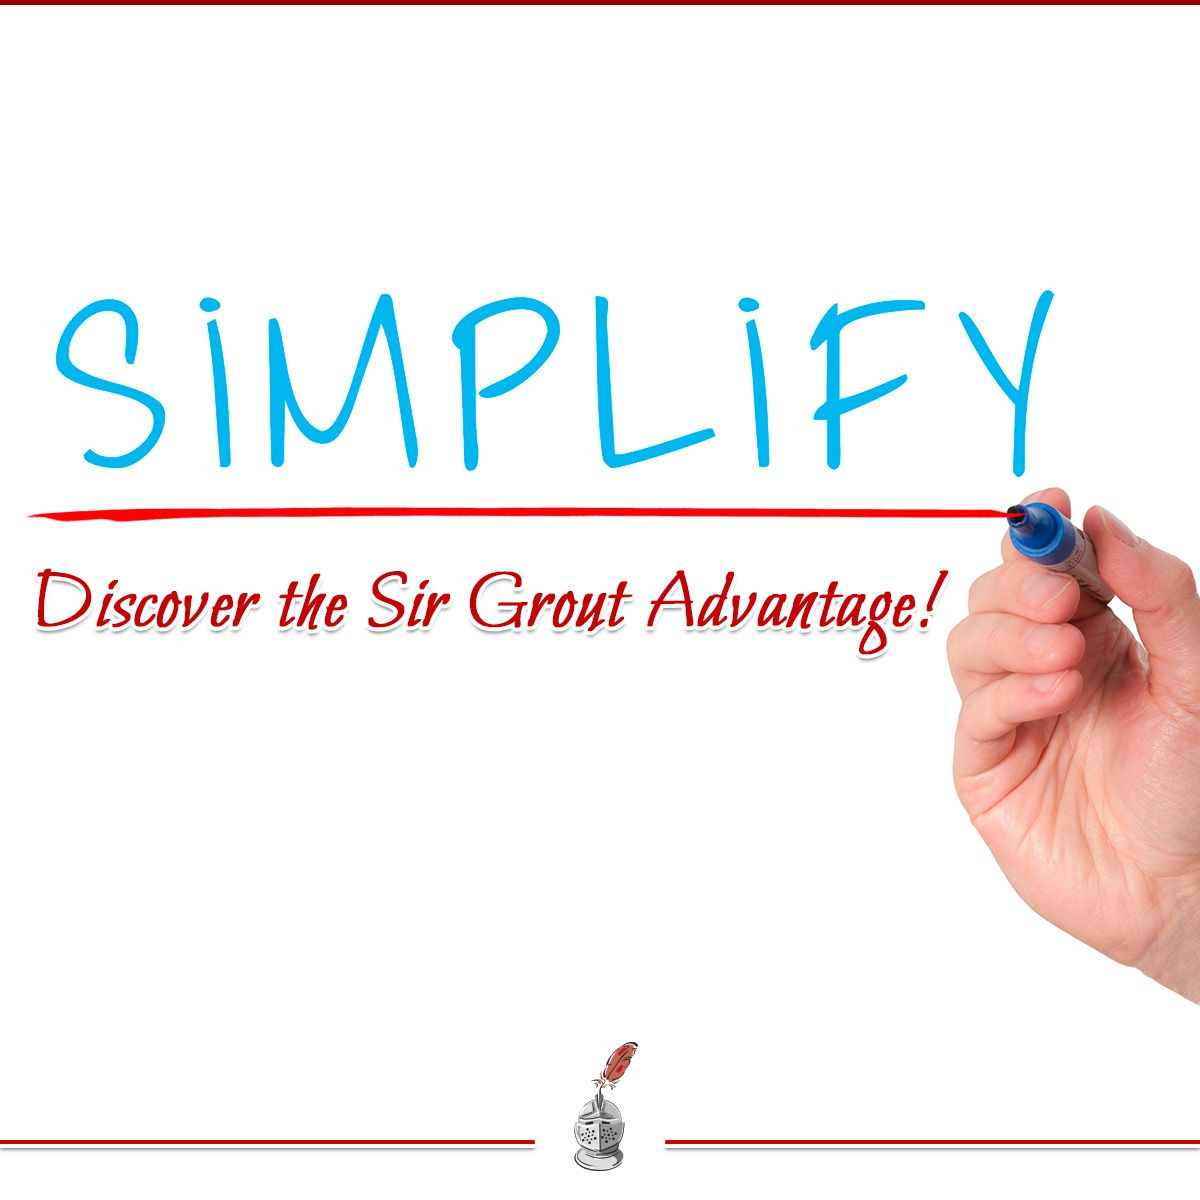 Discover the Sir Grout Advantage!